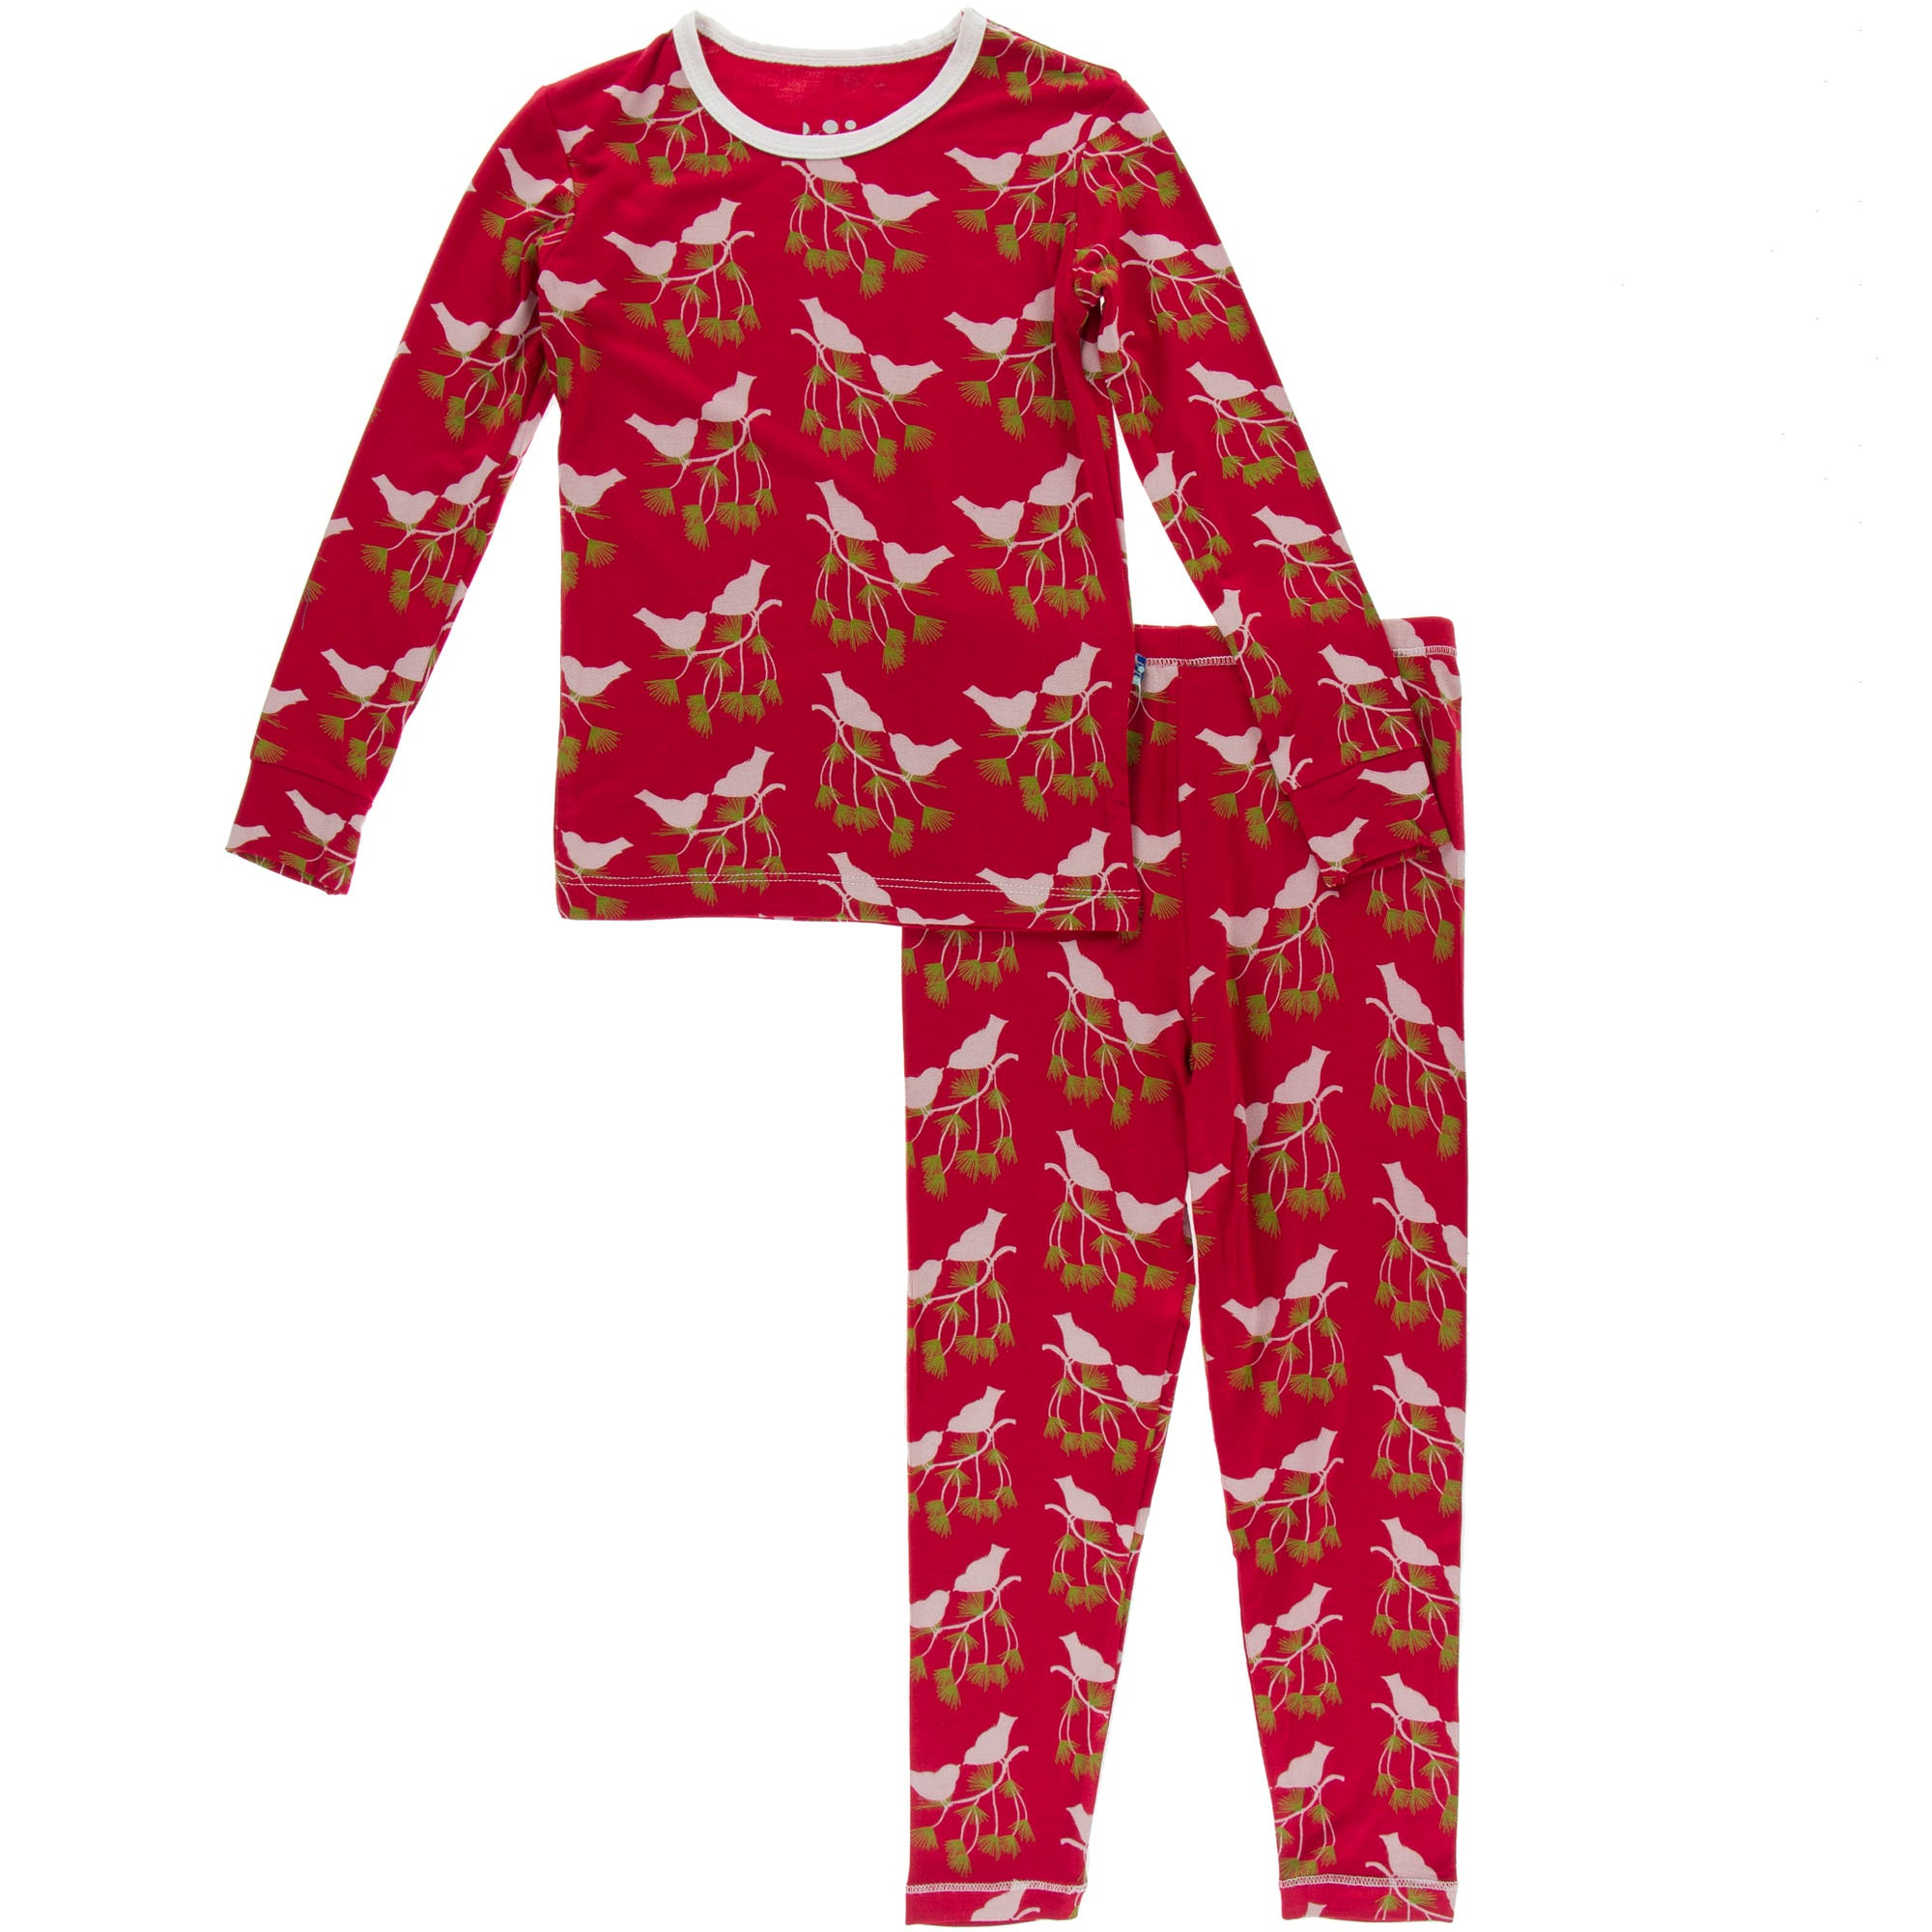 KicKee Pants Pajama Set - Crimson Kissing Birds